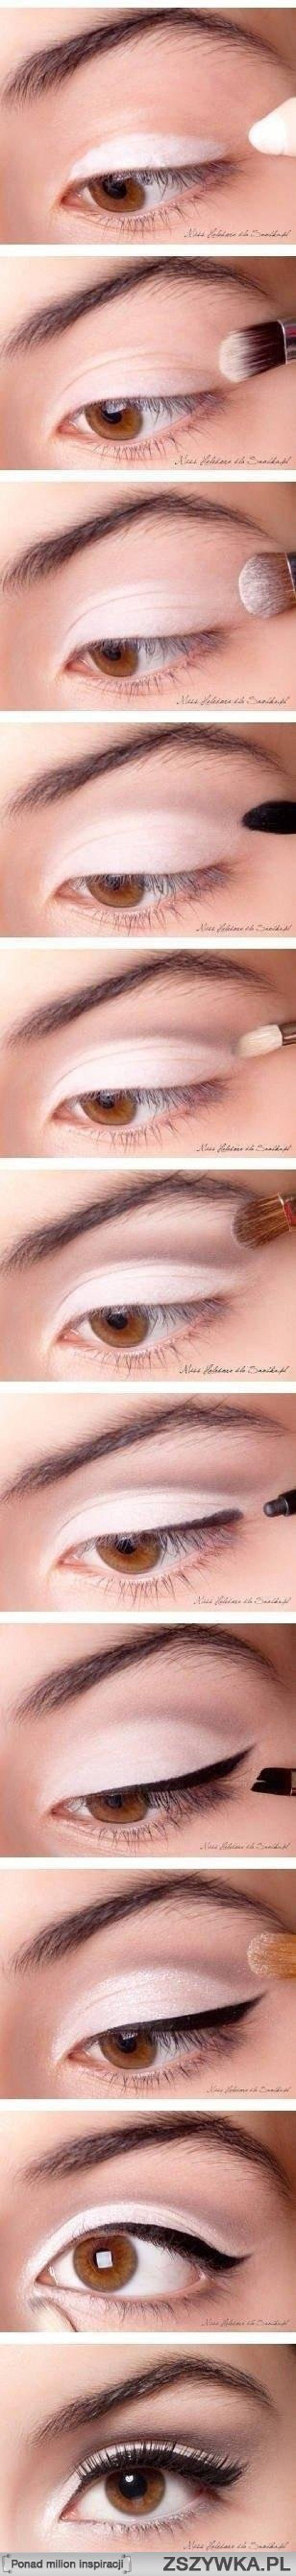 Top 10 Morning in-a-Rush Makeup Tutorials - Top Inspired